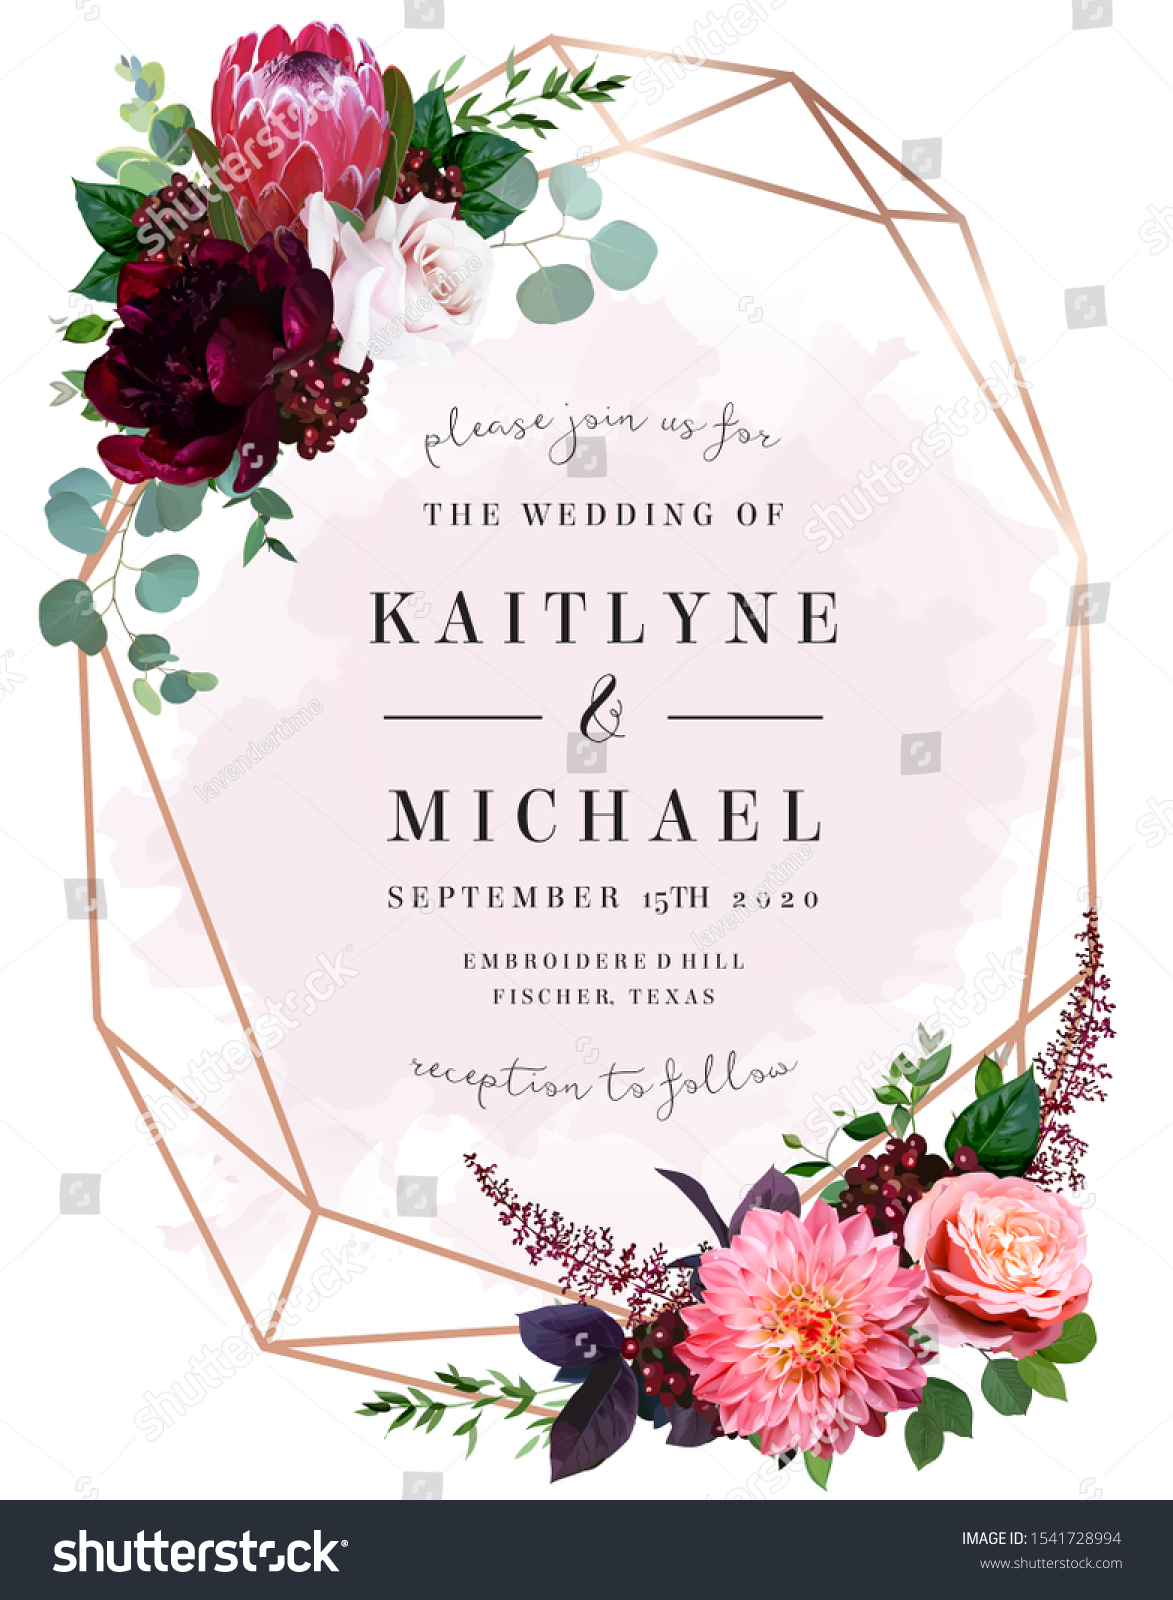 Luxury Fall Flowers Wedding Vector Bouquet Stock Vector Royalty Free 1541728994